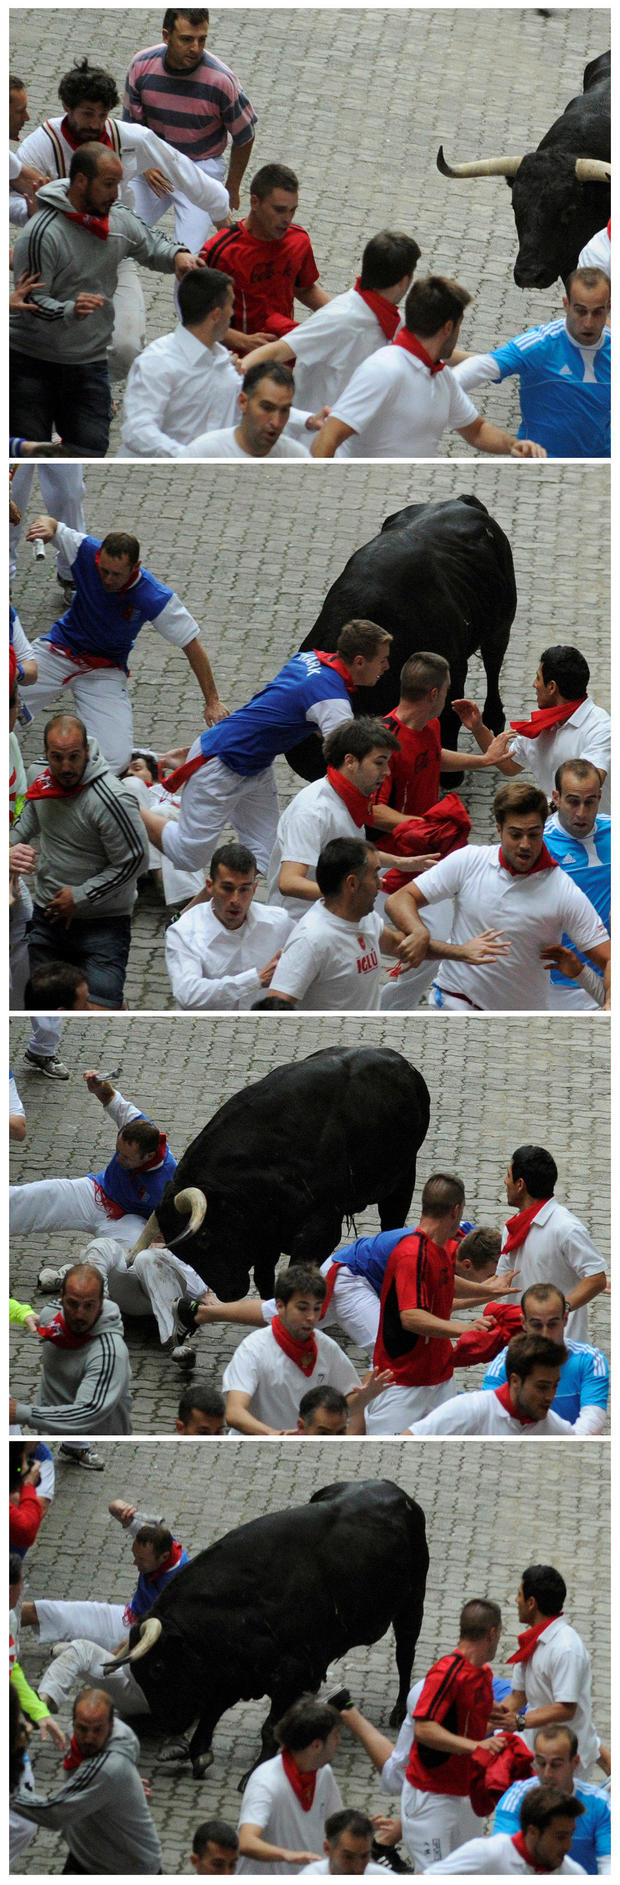 FILE PHOTO: A combination photo shows American Bill Hillmann getting gored in the right thigh during the third running of the bulls at the San Fermin festival in Pamplona